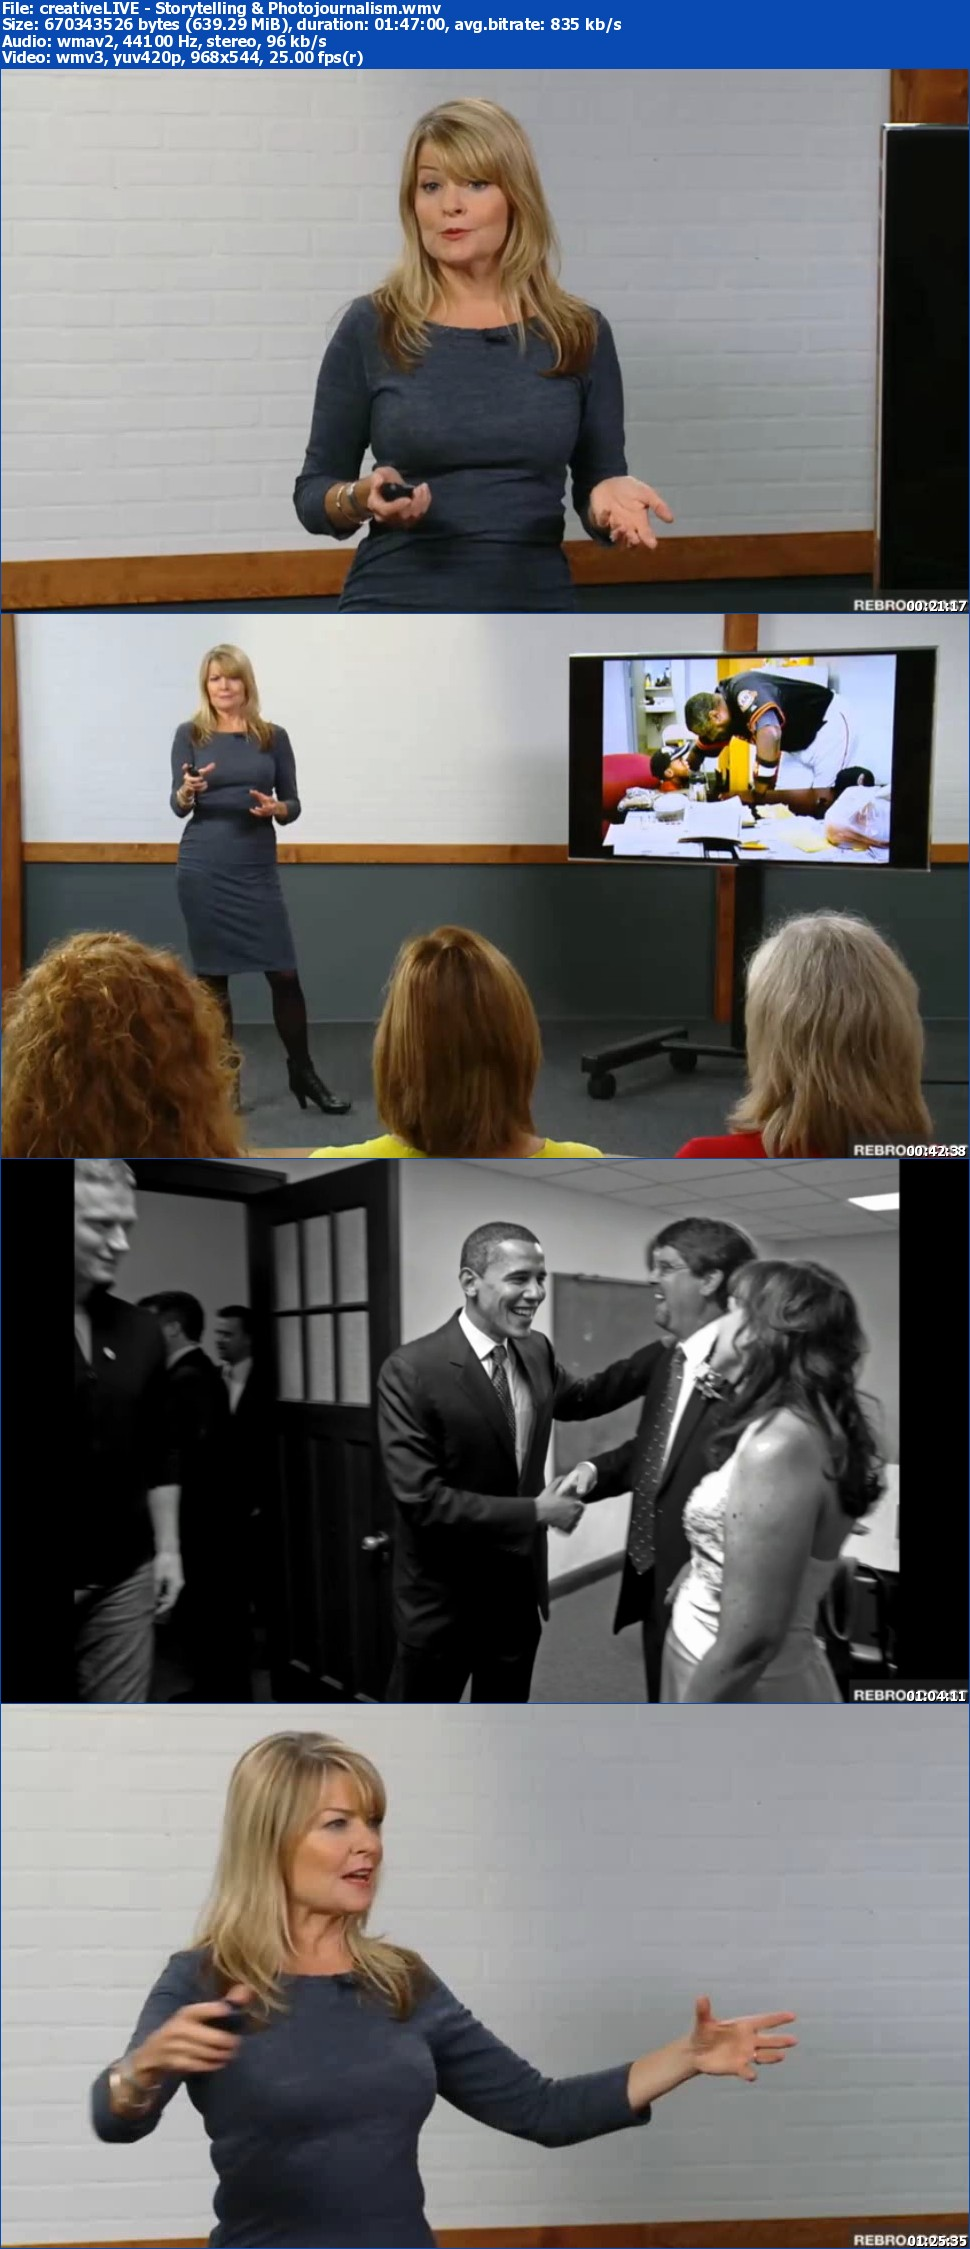 creativeLIVE - Storytelling & Photojournalism with Deanne Fitzmaurice